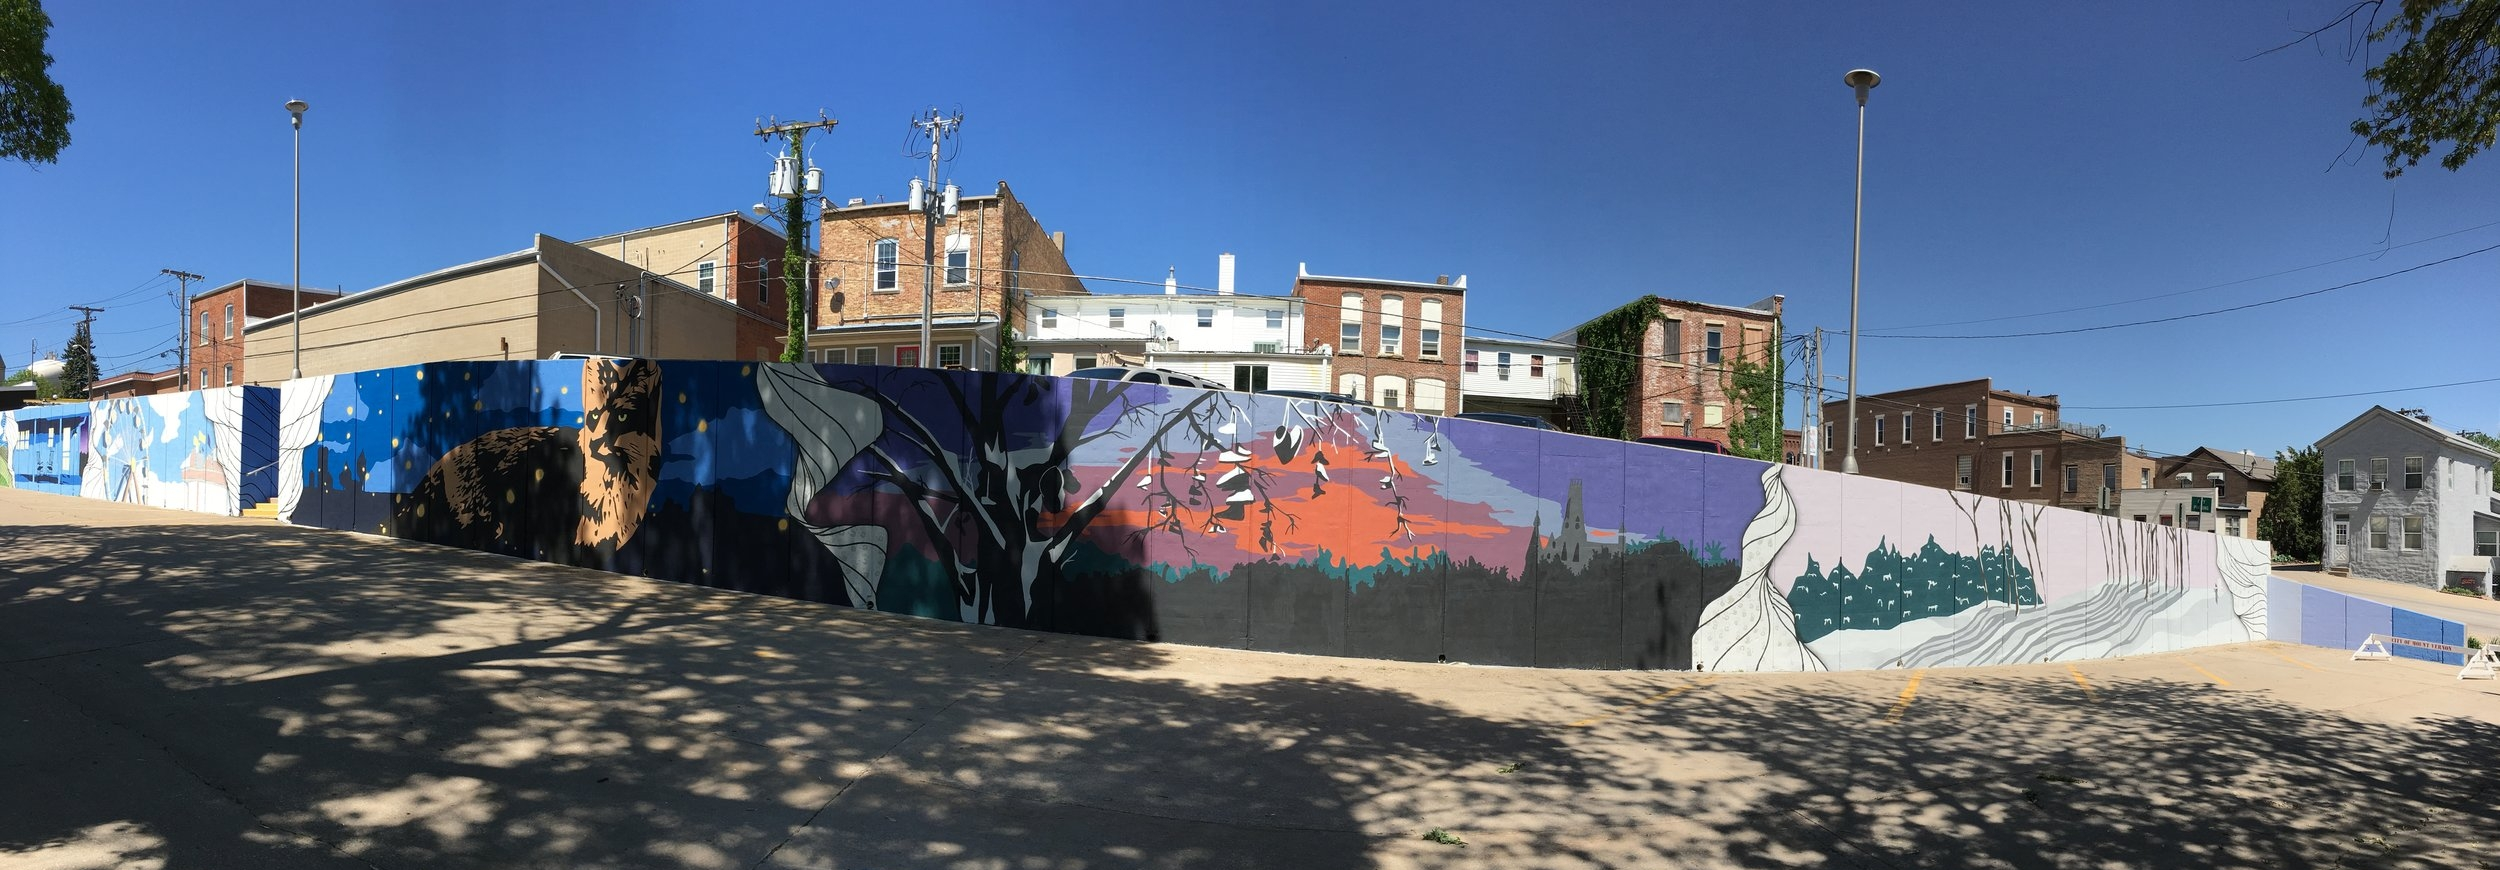 Strider Patton - Mount Vernon Iowa Youth Community Mural Project 2017 - Eastern wall